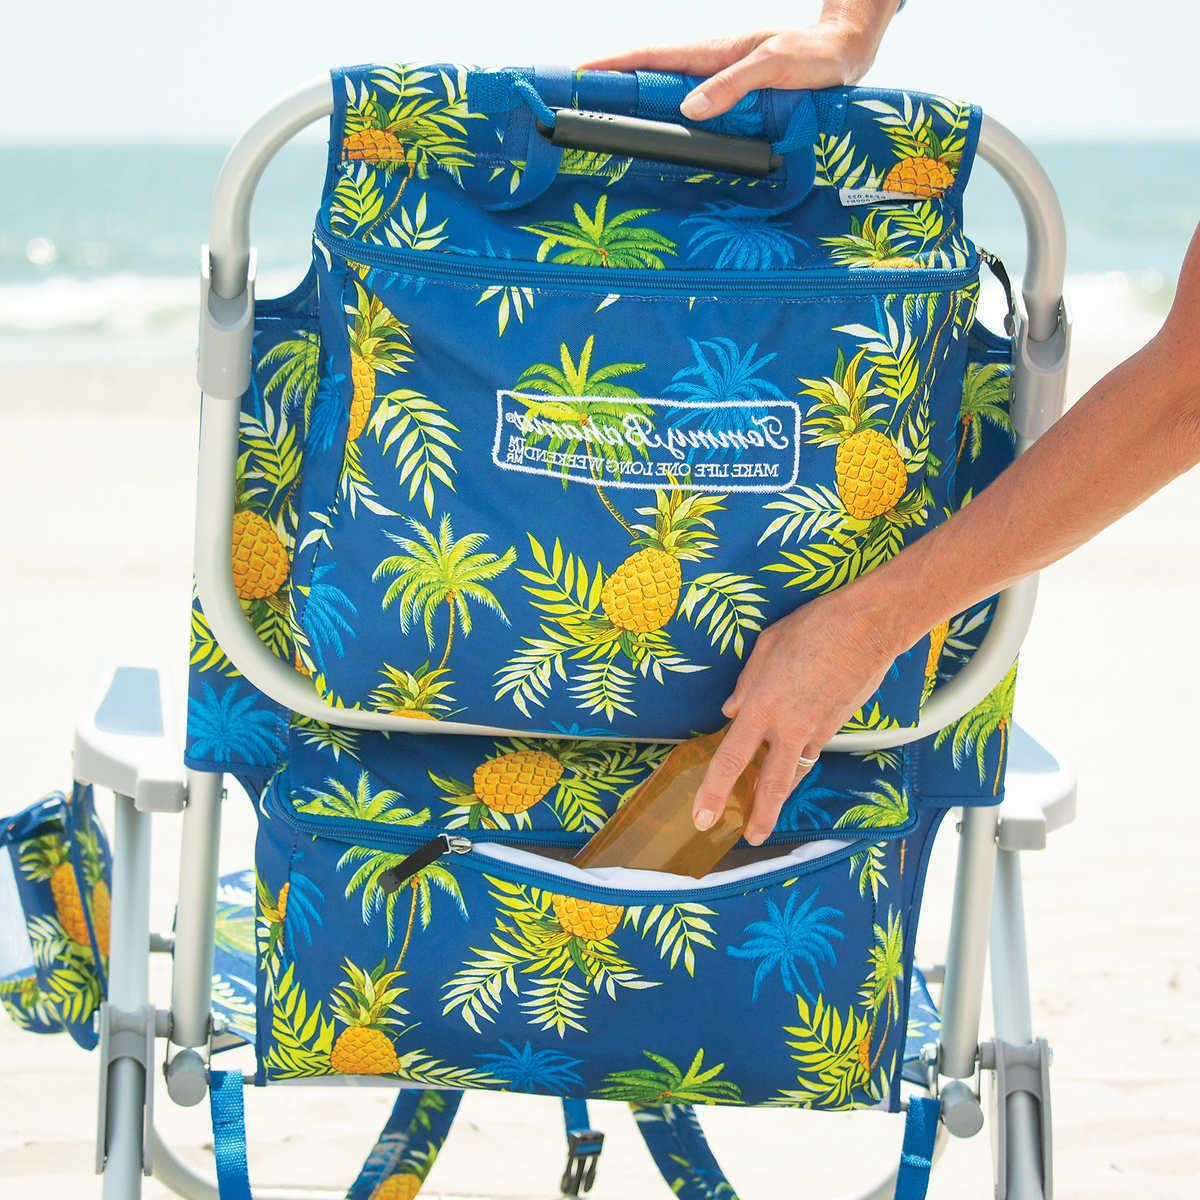 5 position beach chair 2020 blue